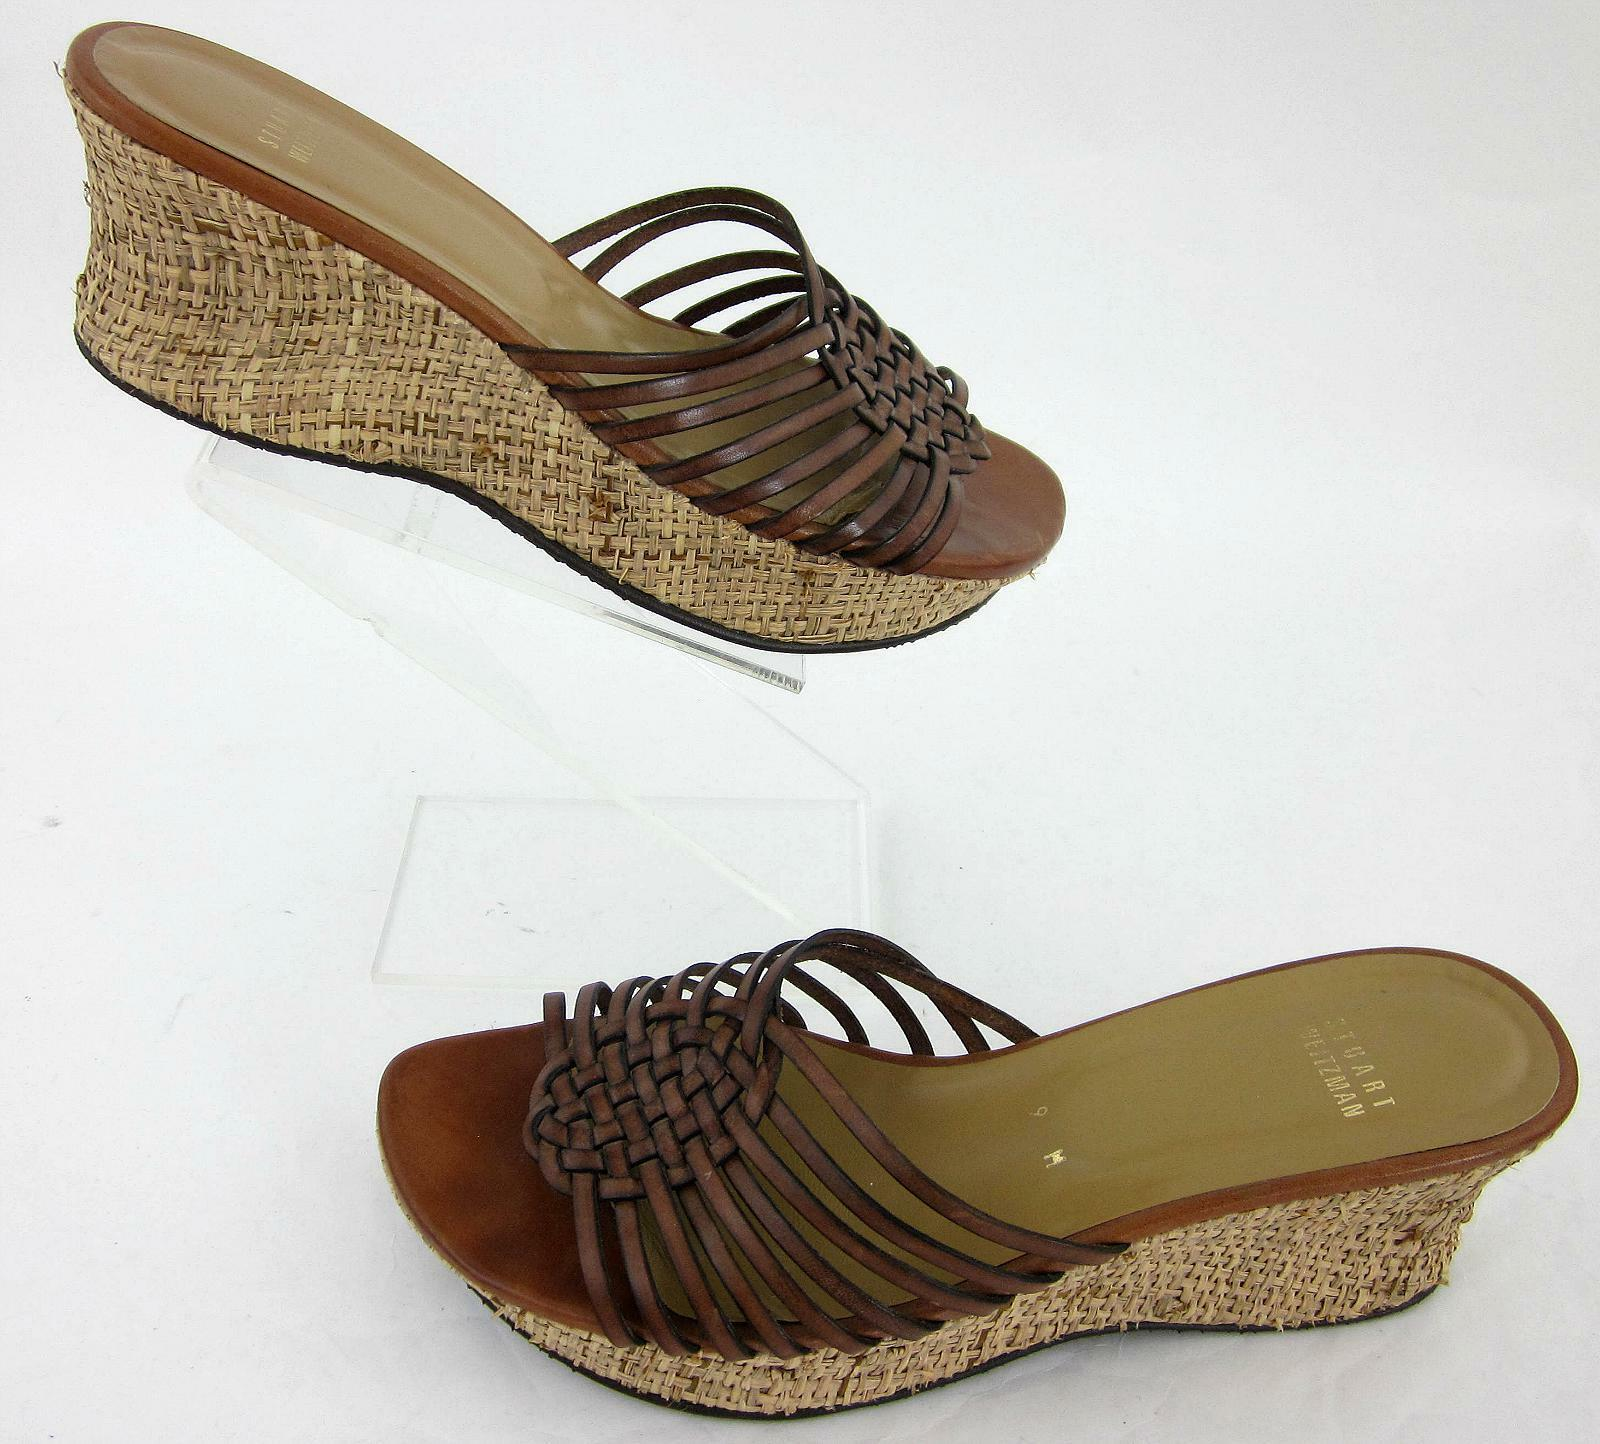 Stuart Weitzman Platform Wicker Wedge Sandals Chestnut Leather Sz 9M